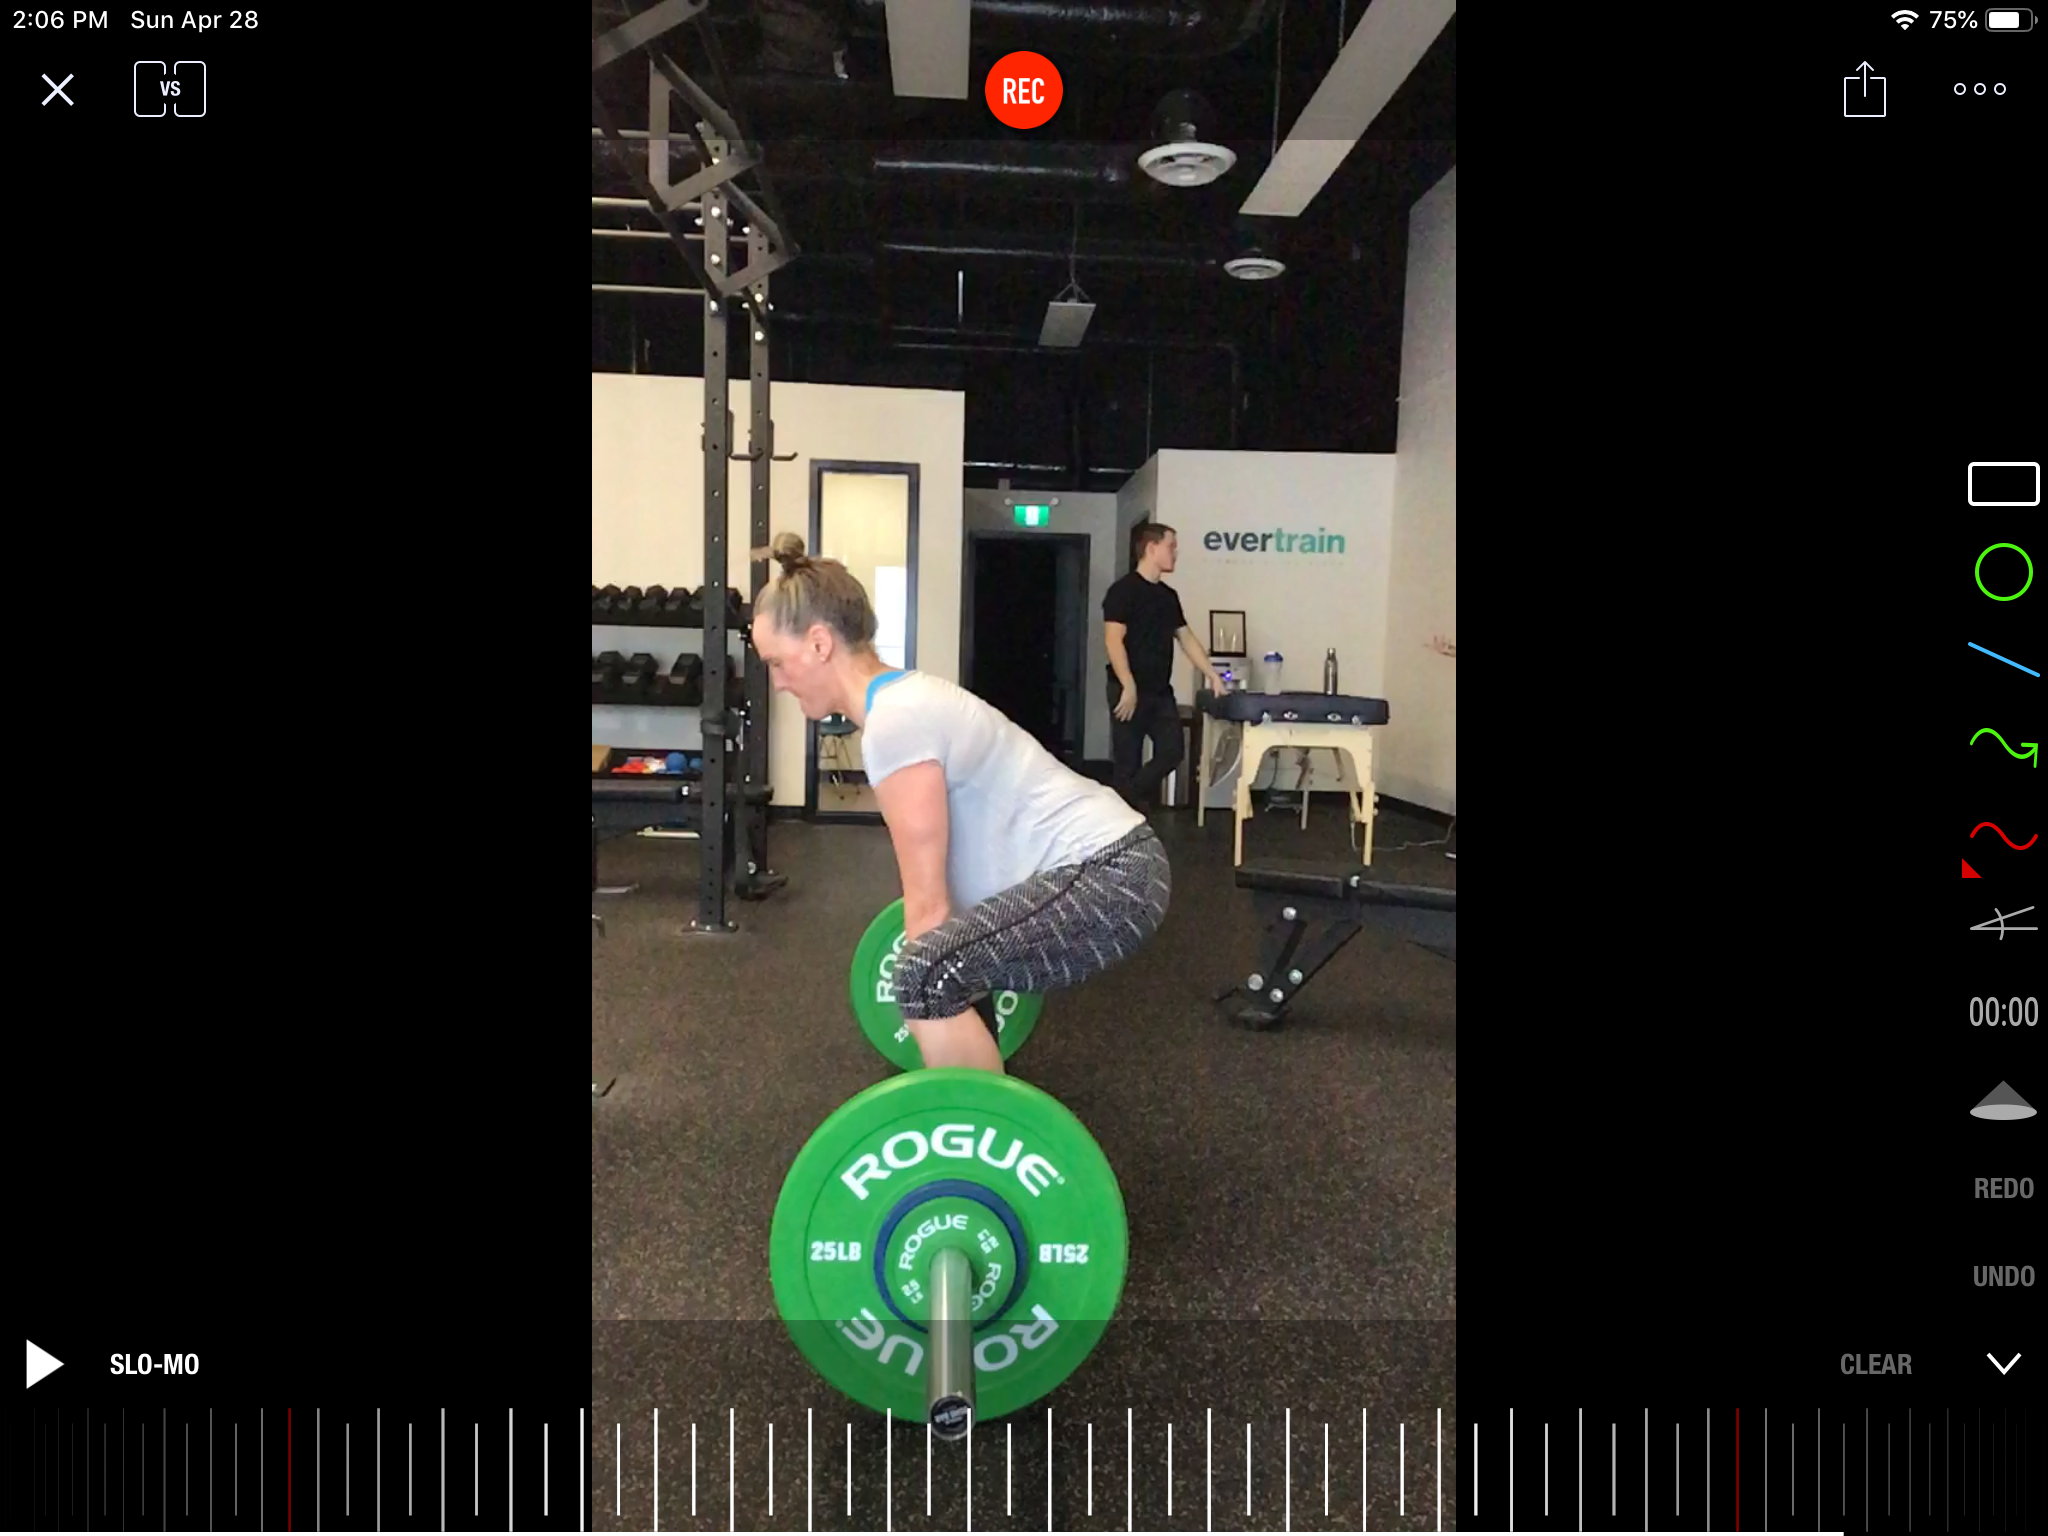 Nicolette focuses her attention on her technique in a barbell deadlift. Deadlifts are movements that should be learned as it replicates the act of picking something up (a movement people do every day).